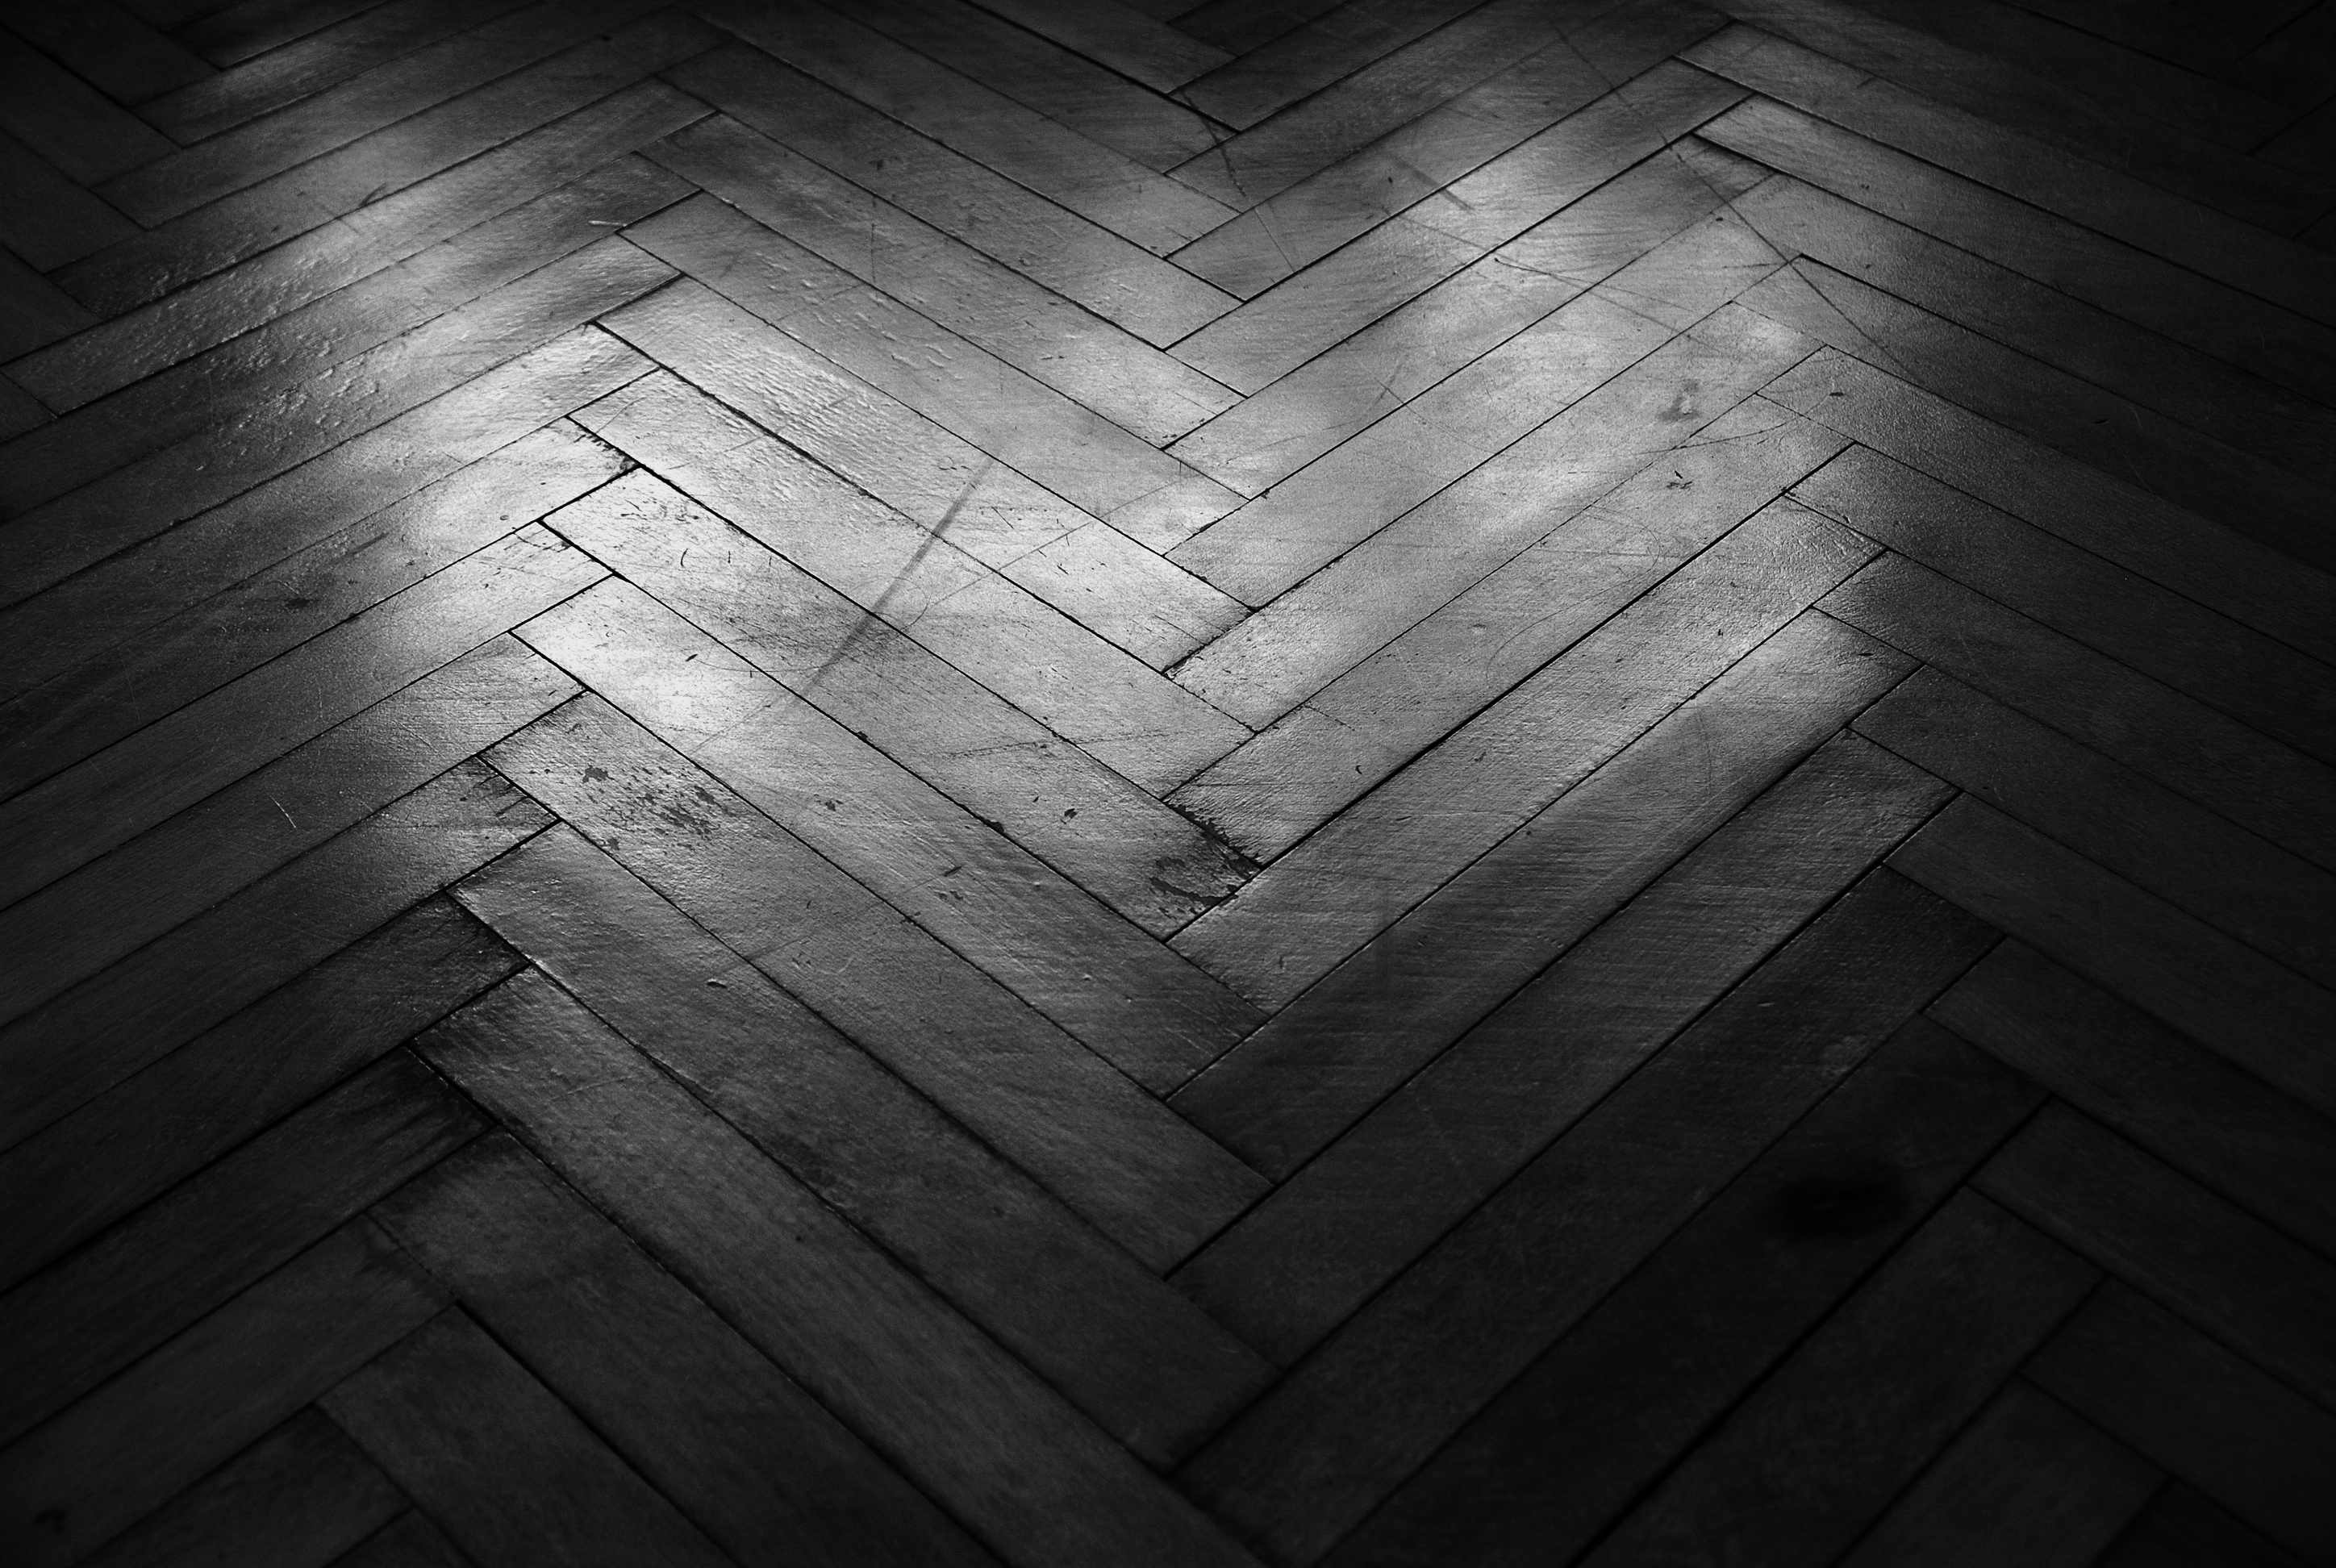 floor_photography_surface_gloss_tile_parquet_desktop_2896x1944_hd-wallpaper-42405.jpg